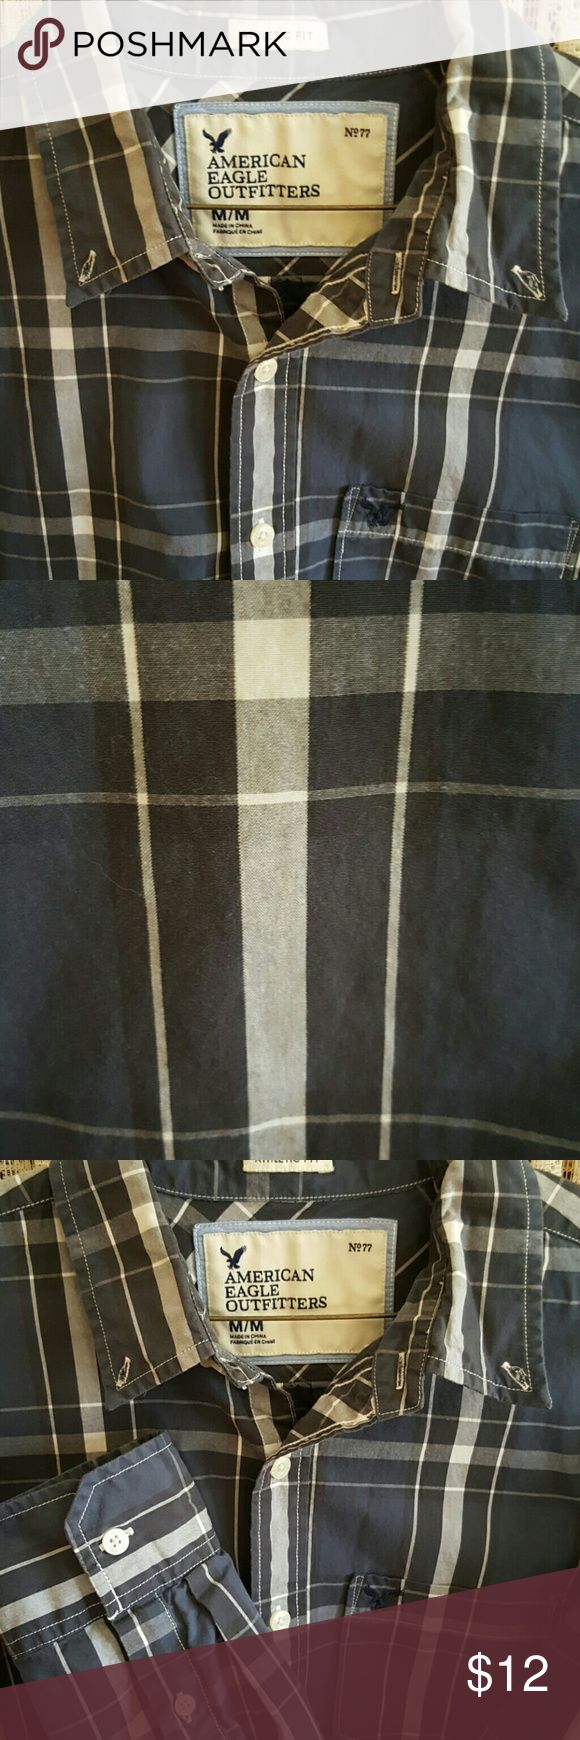 American Eagle Shirt American Eagle long sleeve button down shirt,  one front pocket, size medium, blue, gray and white colors, athletic fit. American Eagle Outfitters Shirts Casual Button Down Shirts